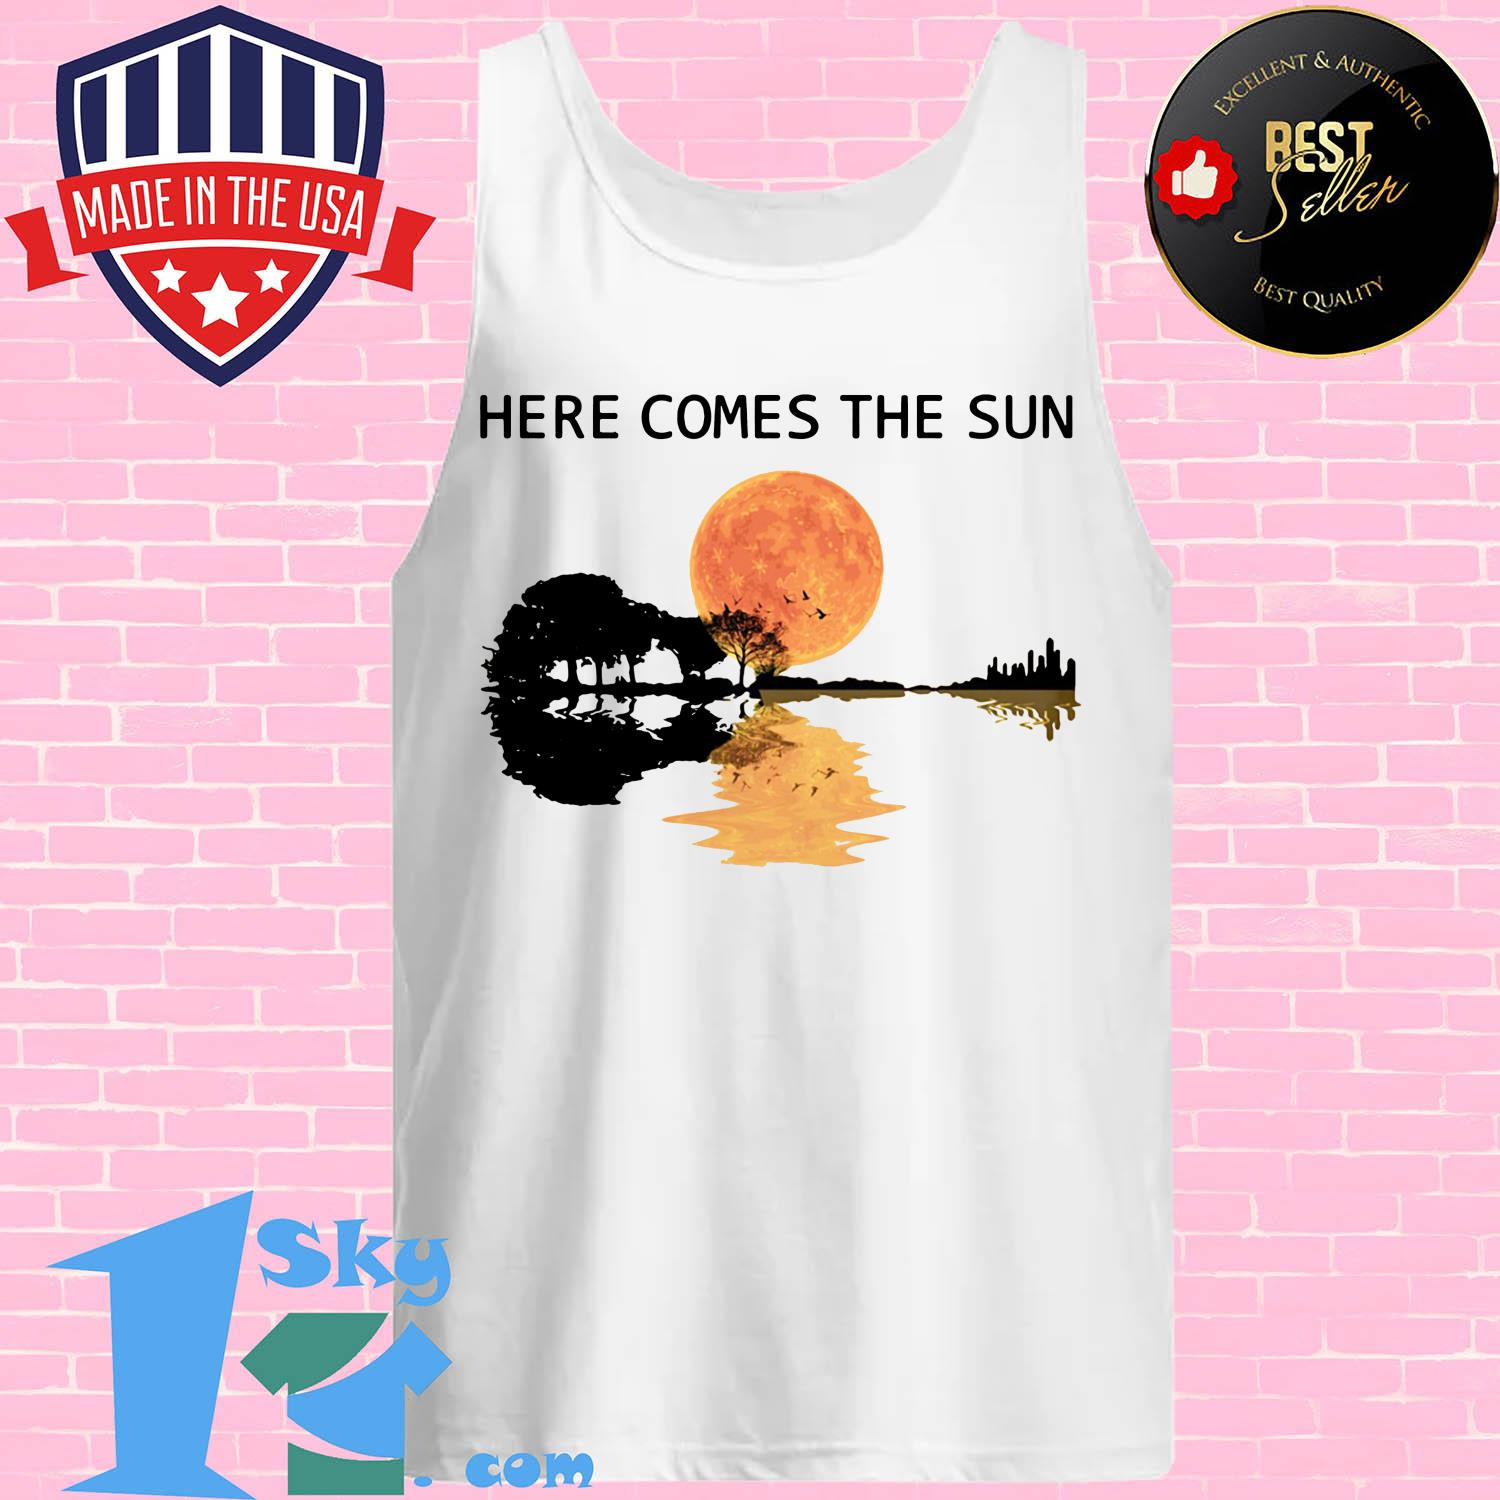 here comes the sun and i say its alright guitar tank top - Here Comes The Sun And I Say It's Alright Guitar Shirt